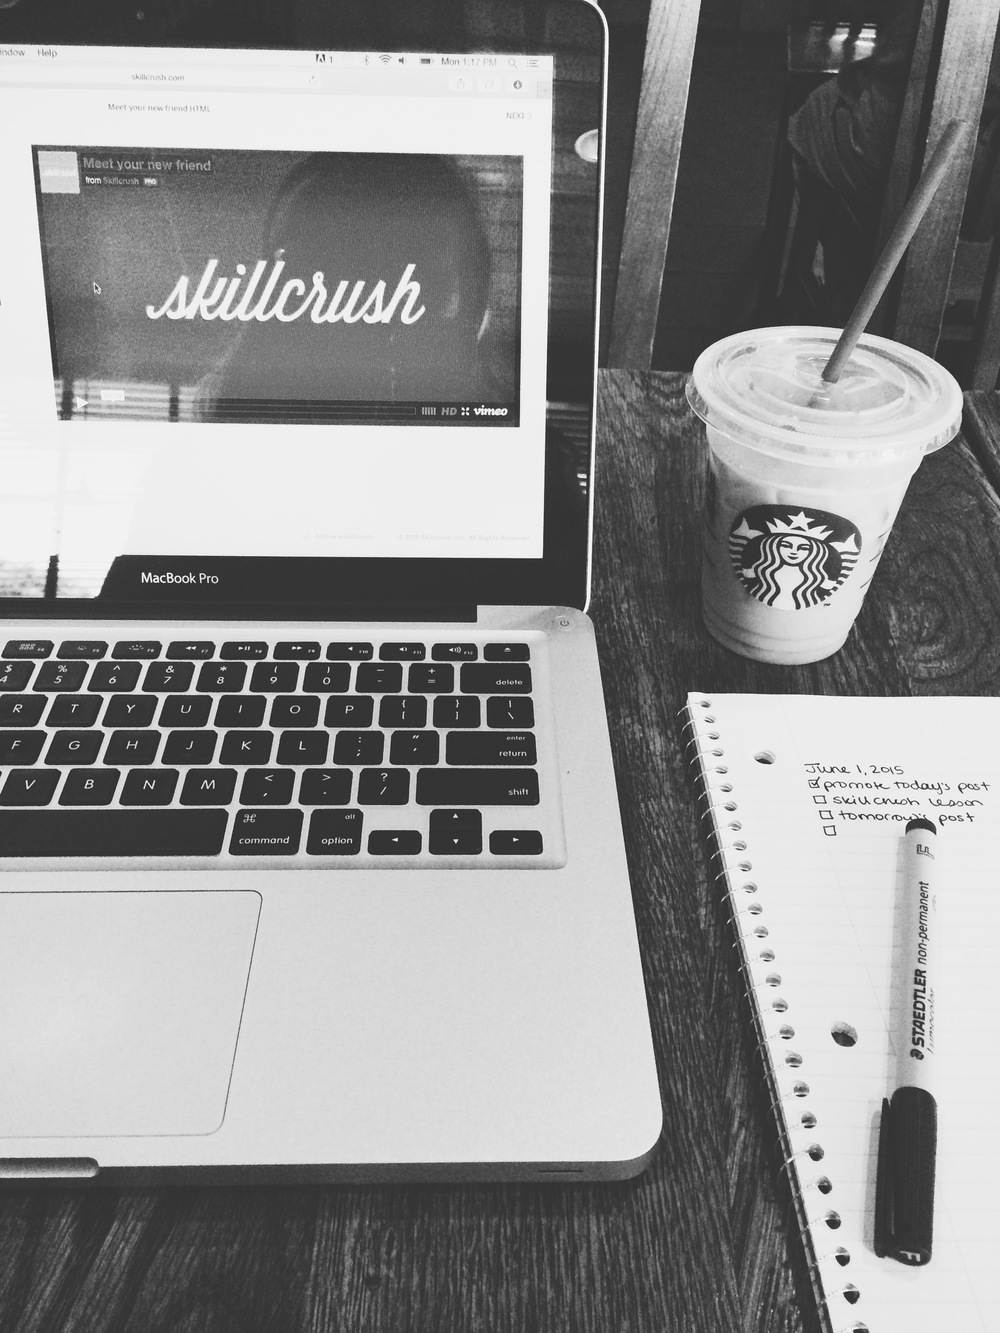 Skillcrush on computer at Starbucks